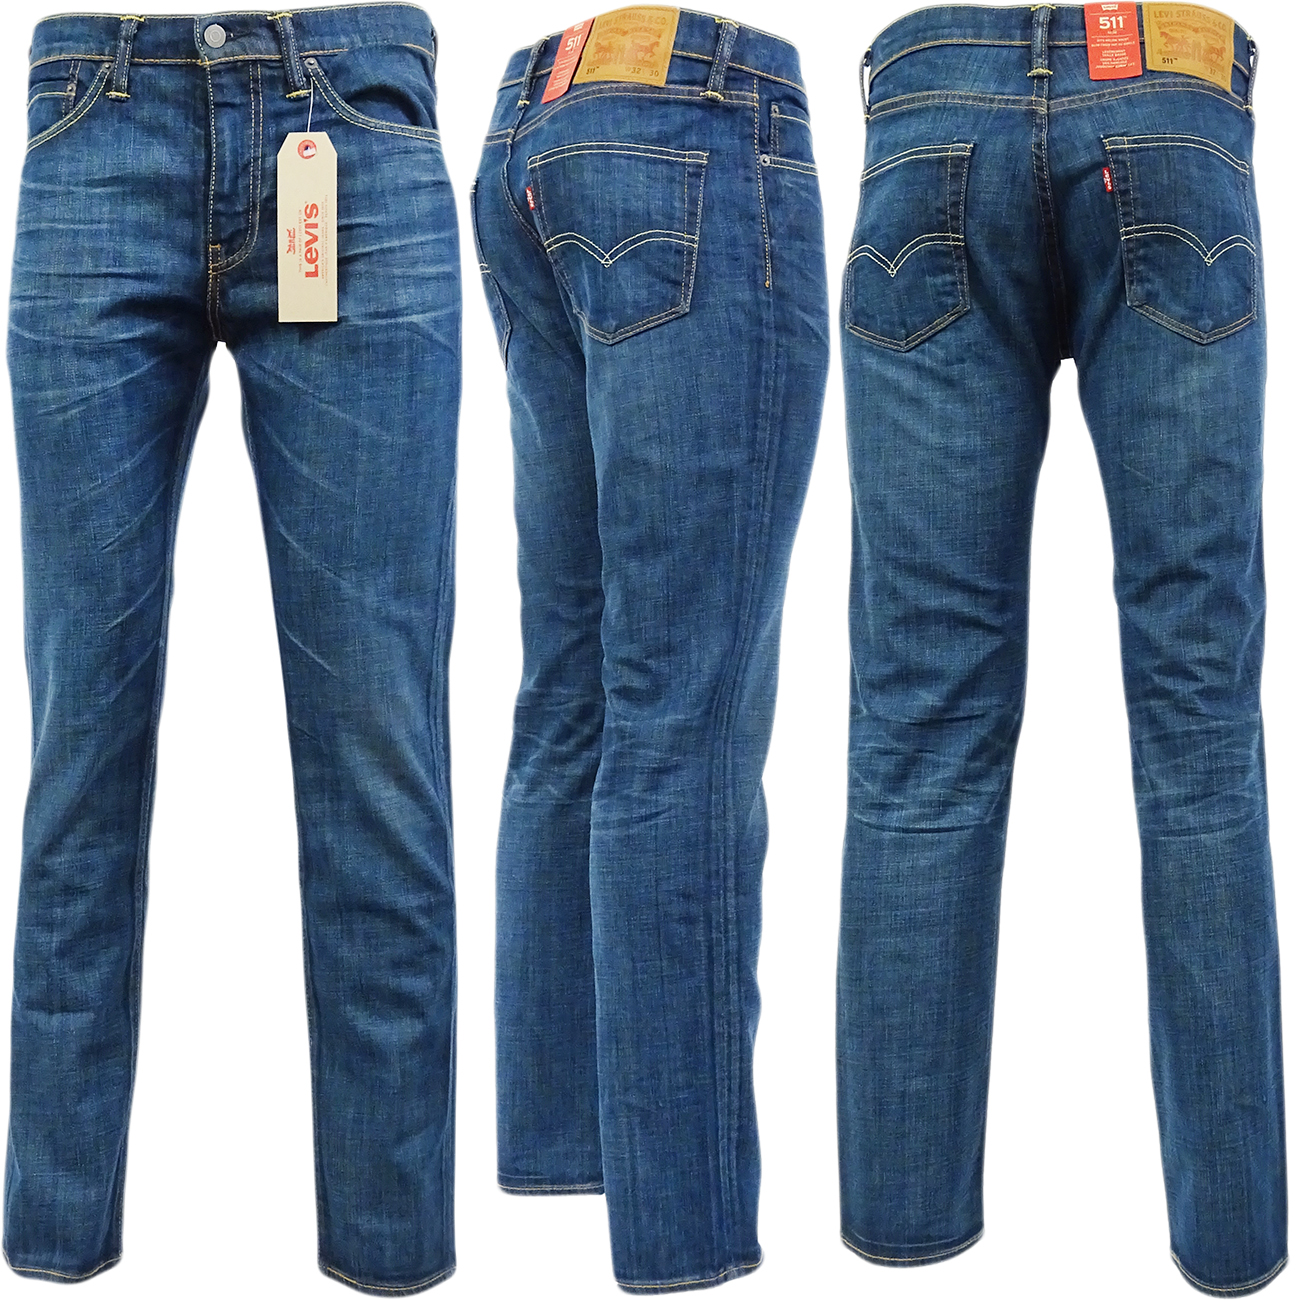 herren levis jeans 511 enge passform 39 explorer 39 denim hose ebay. Black Bedroom Furniture Sets. Home Design Ideas